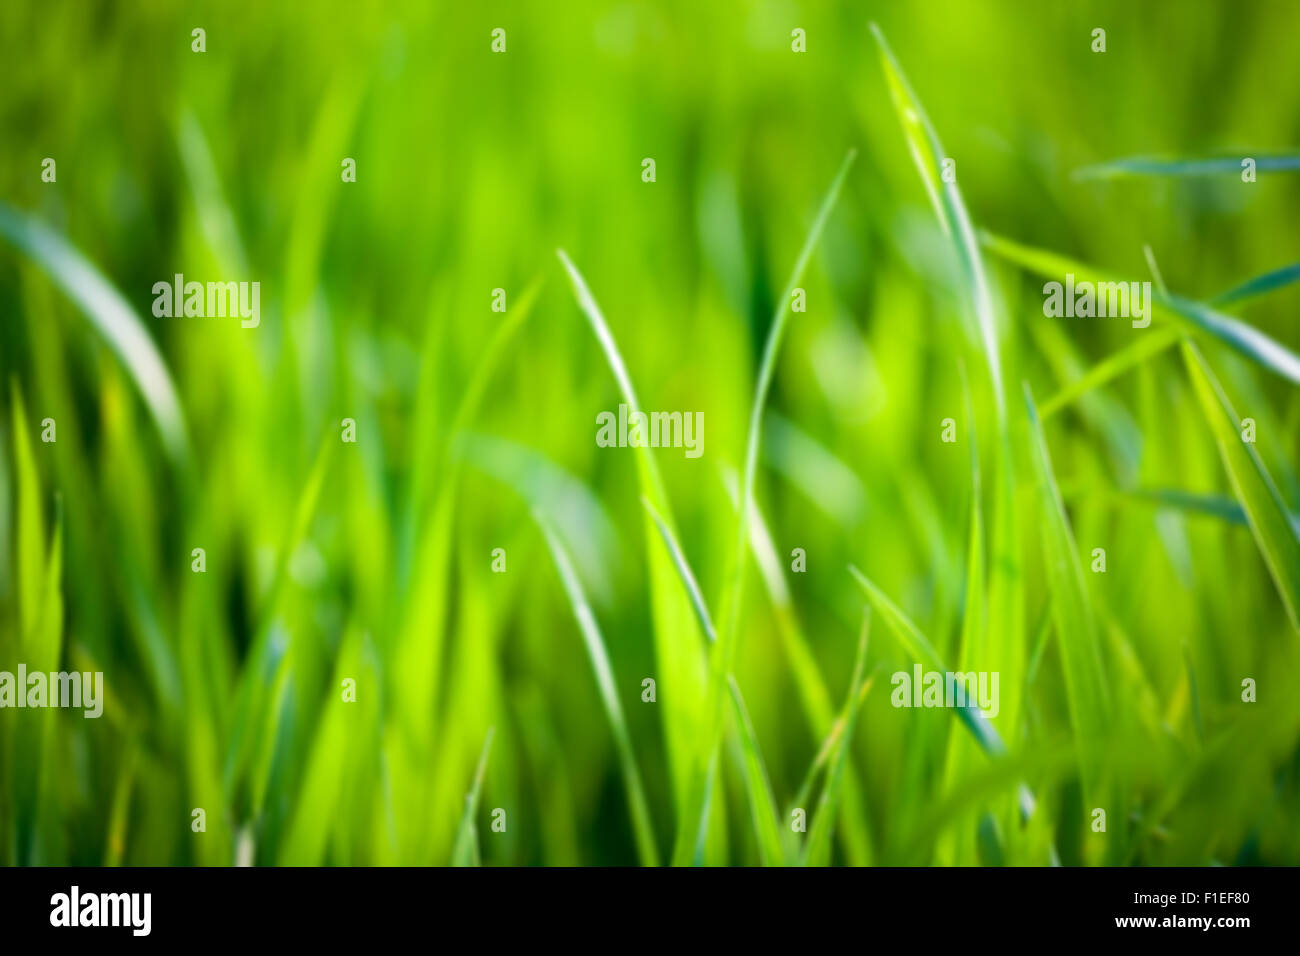 Blurred background of green grass - Stock Image